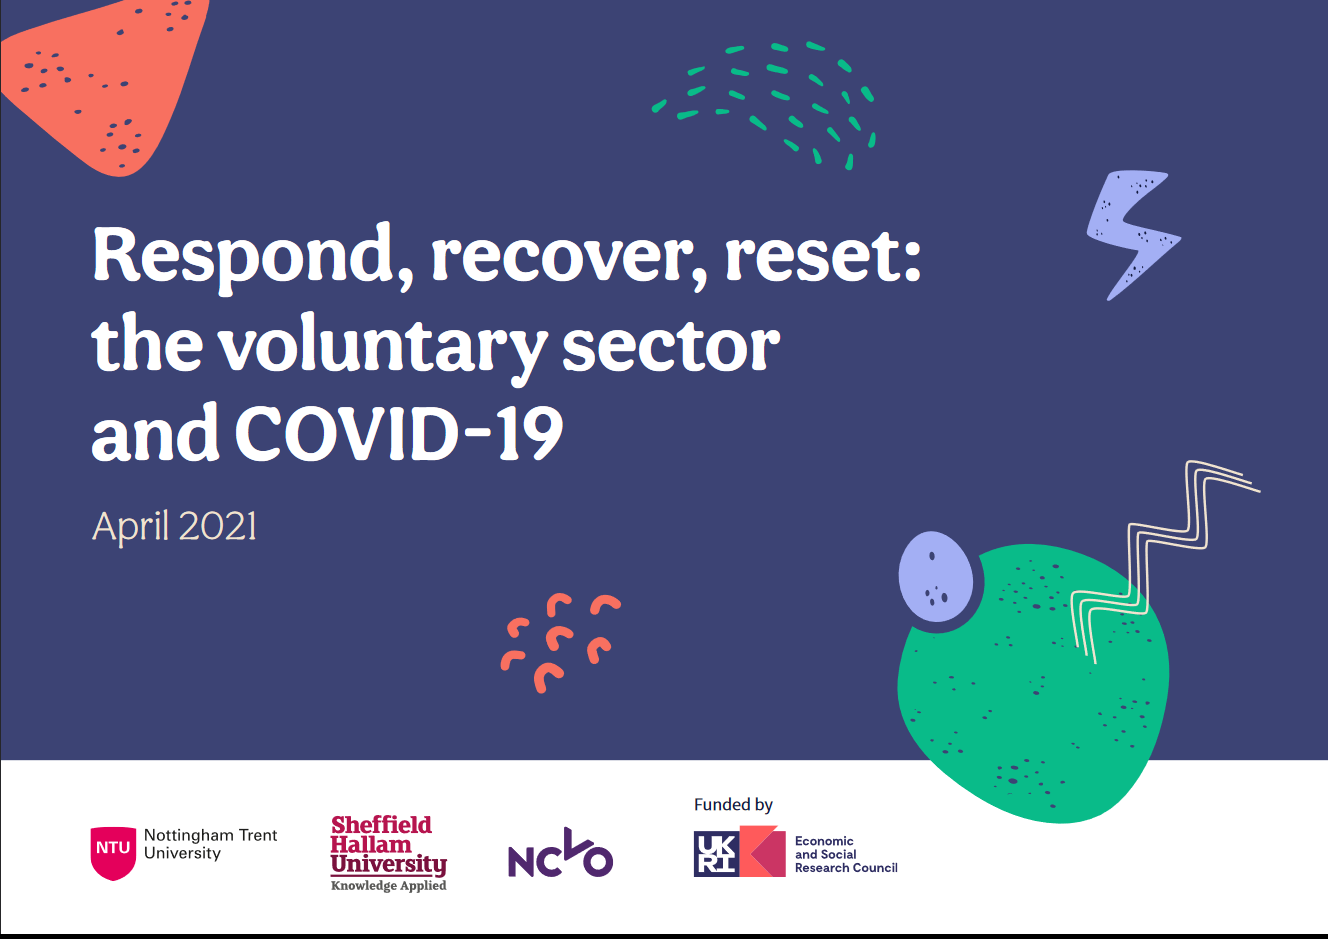 Respond, Recover, Reset: the voluntary sector and COVID-19 April 2021